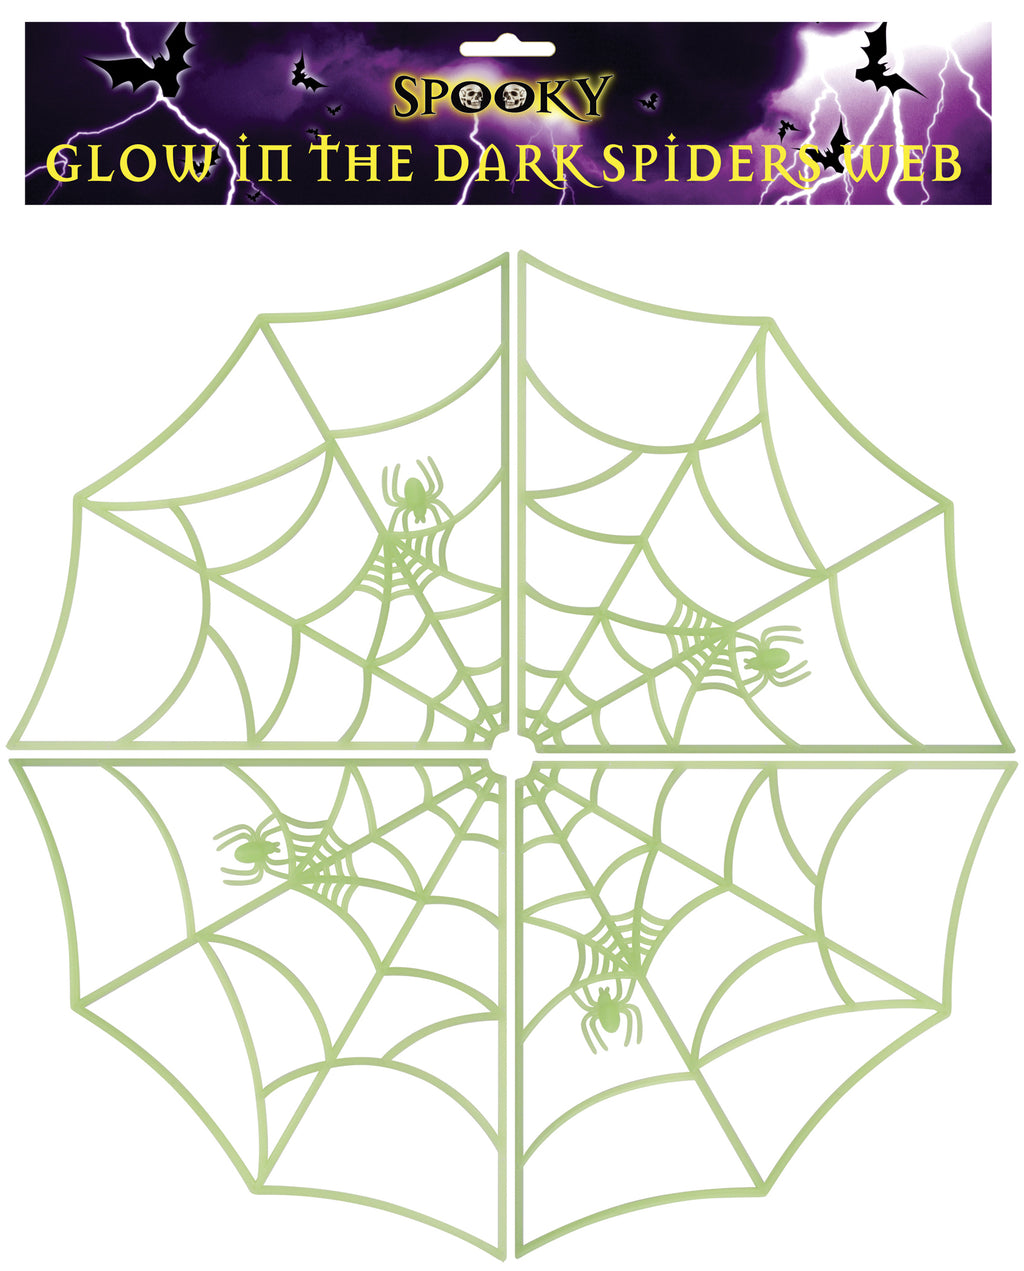 Glow In The Dark Spiders Web